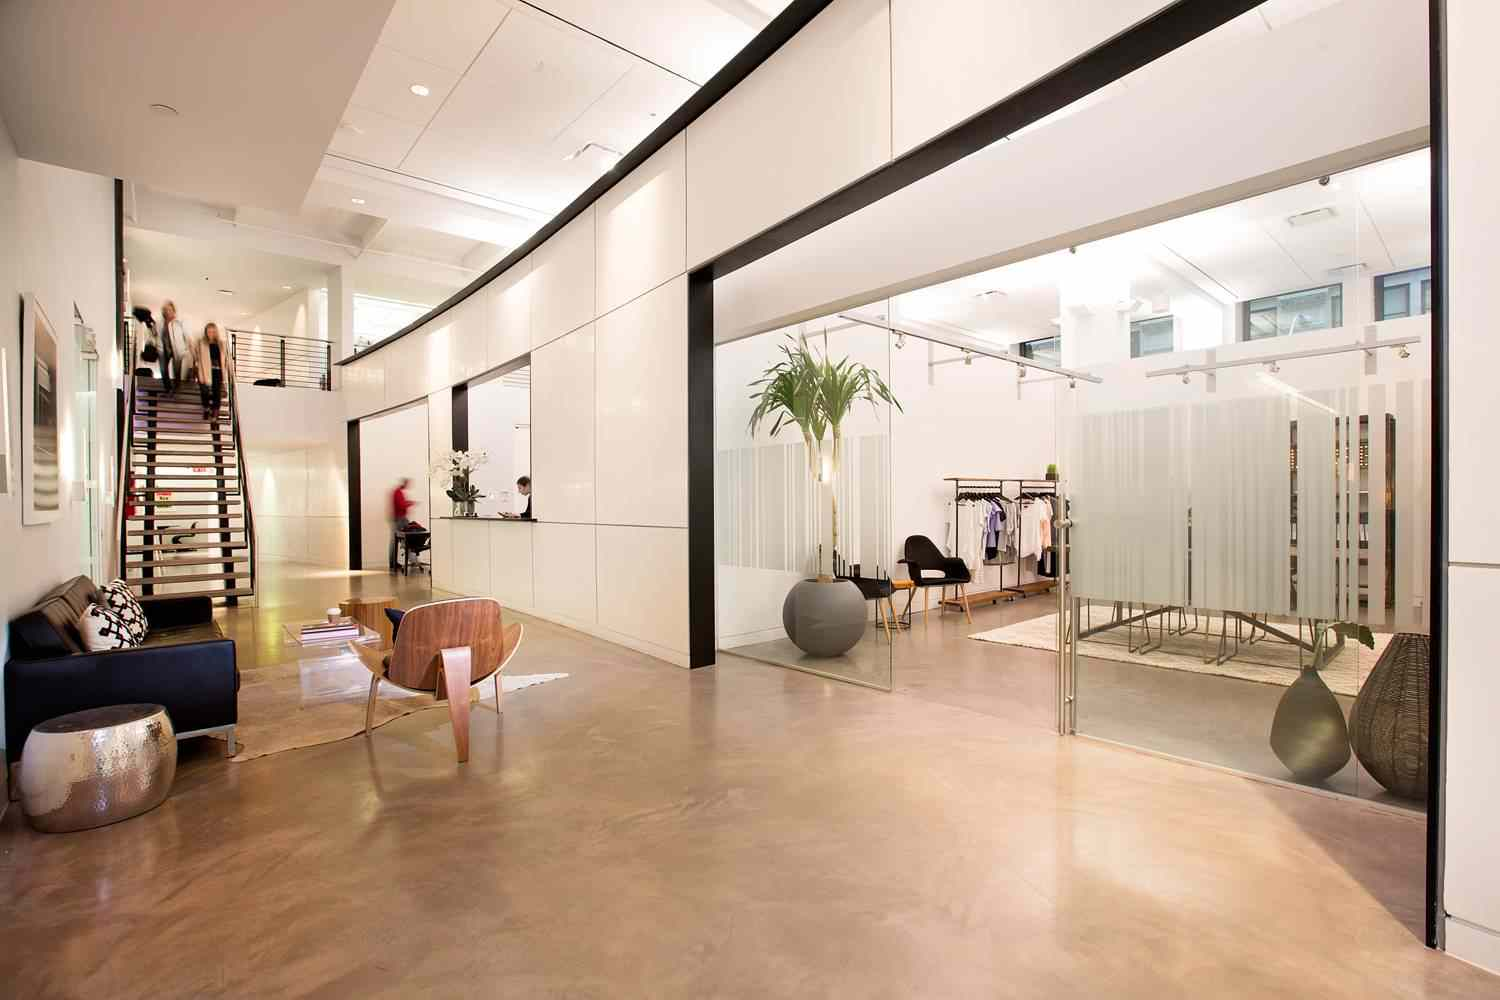 Showroom Space - Showcase your brand and impress your buyers in Space 530's all encompassing environment featuring an art collection, high ceilings with 16-foot-tall windows.The future of showrooms.